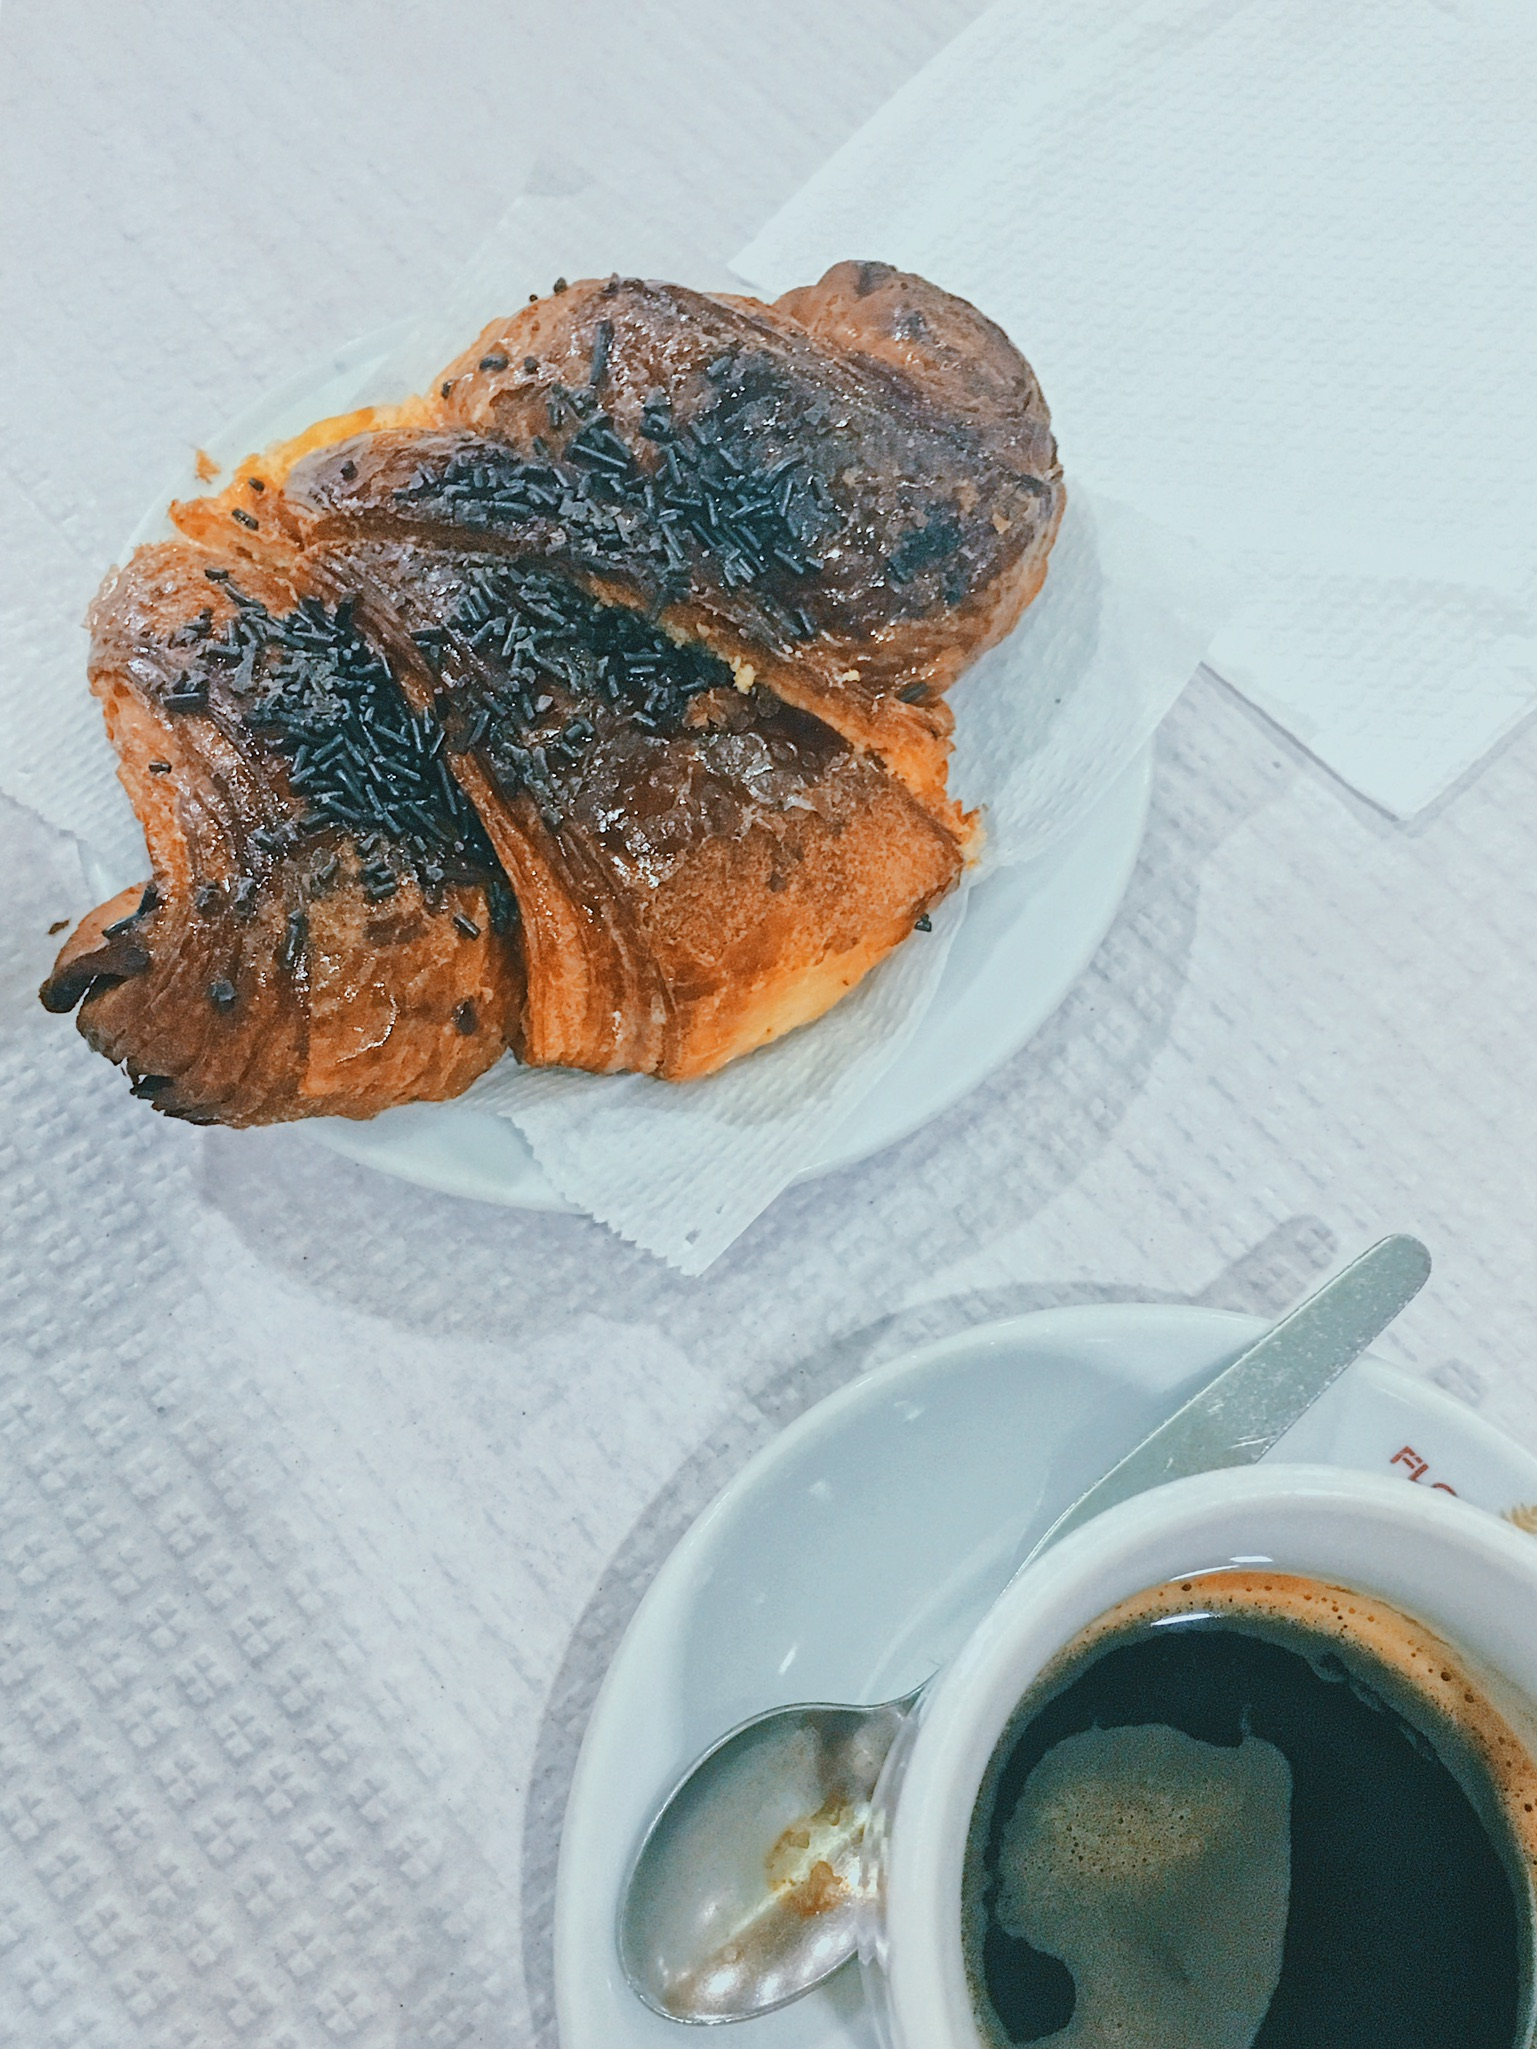 Chocolate croissant and coffee